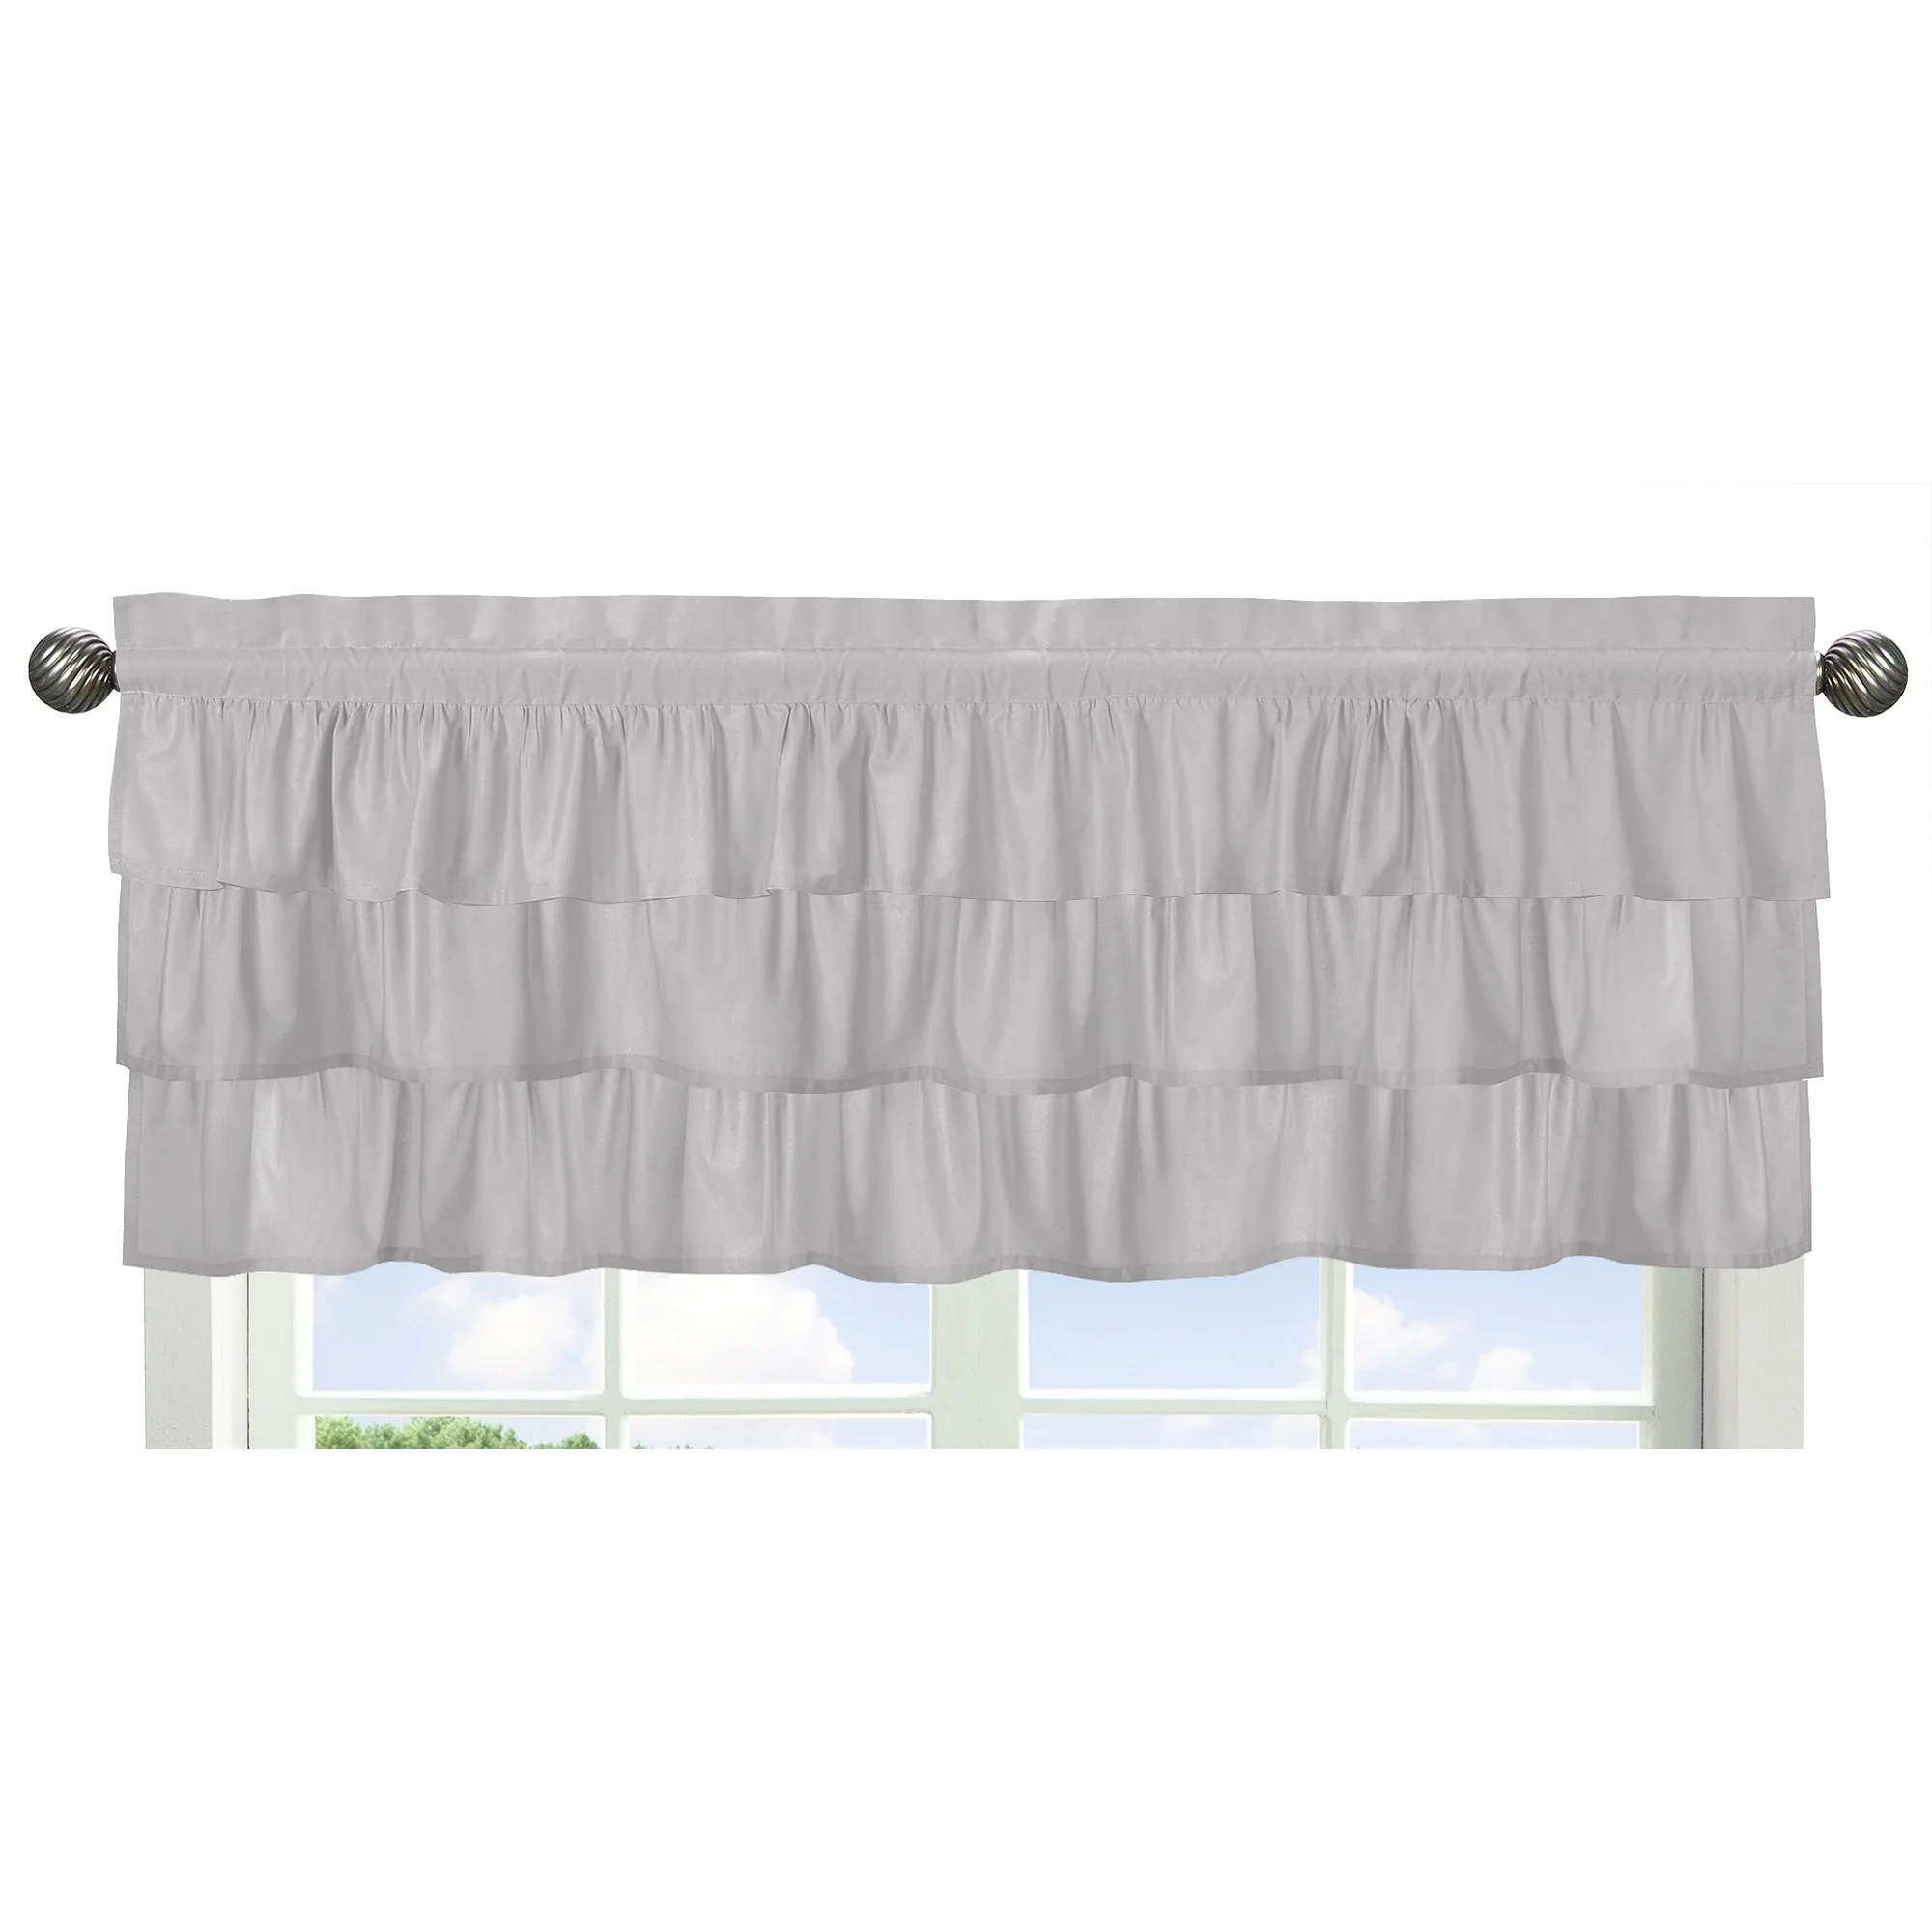 Bad Shabby Chic Sweet Jojo Designs Solid Color Grey Shabby Chic Ruffle Harper Collection Window Curtain Valance